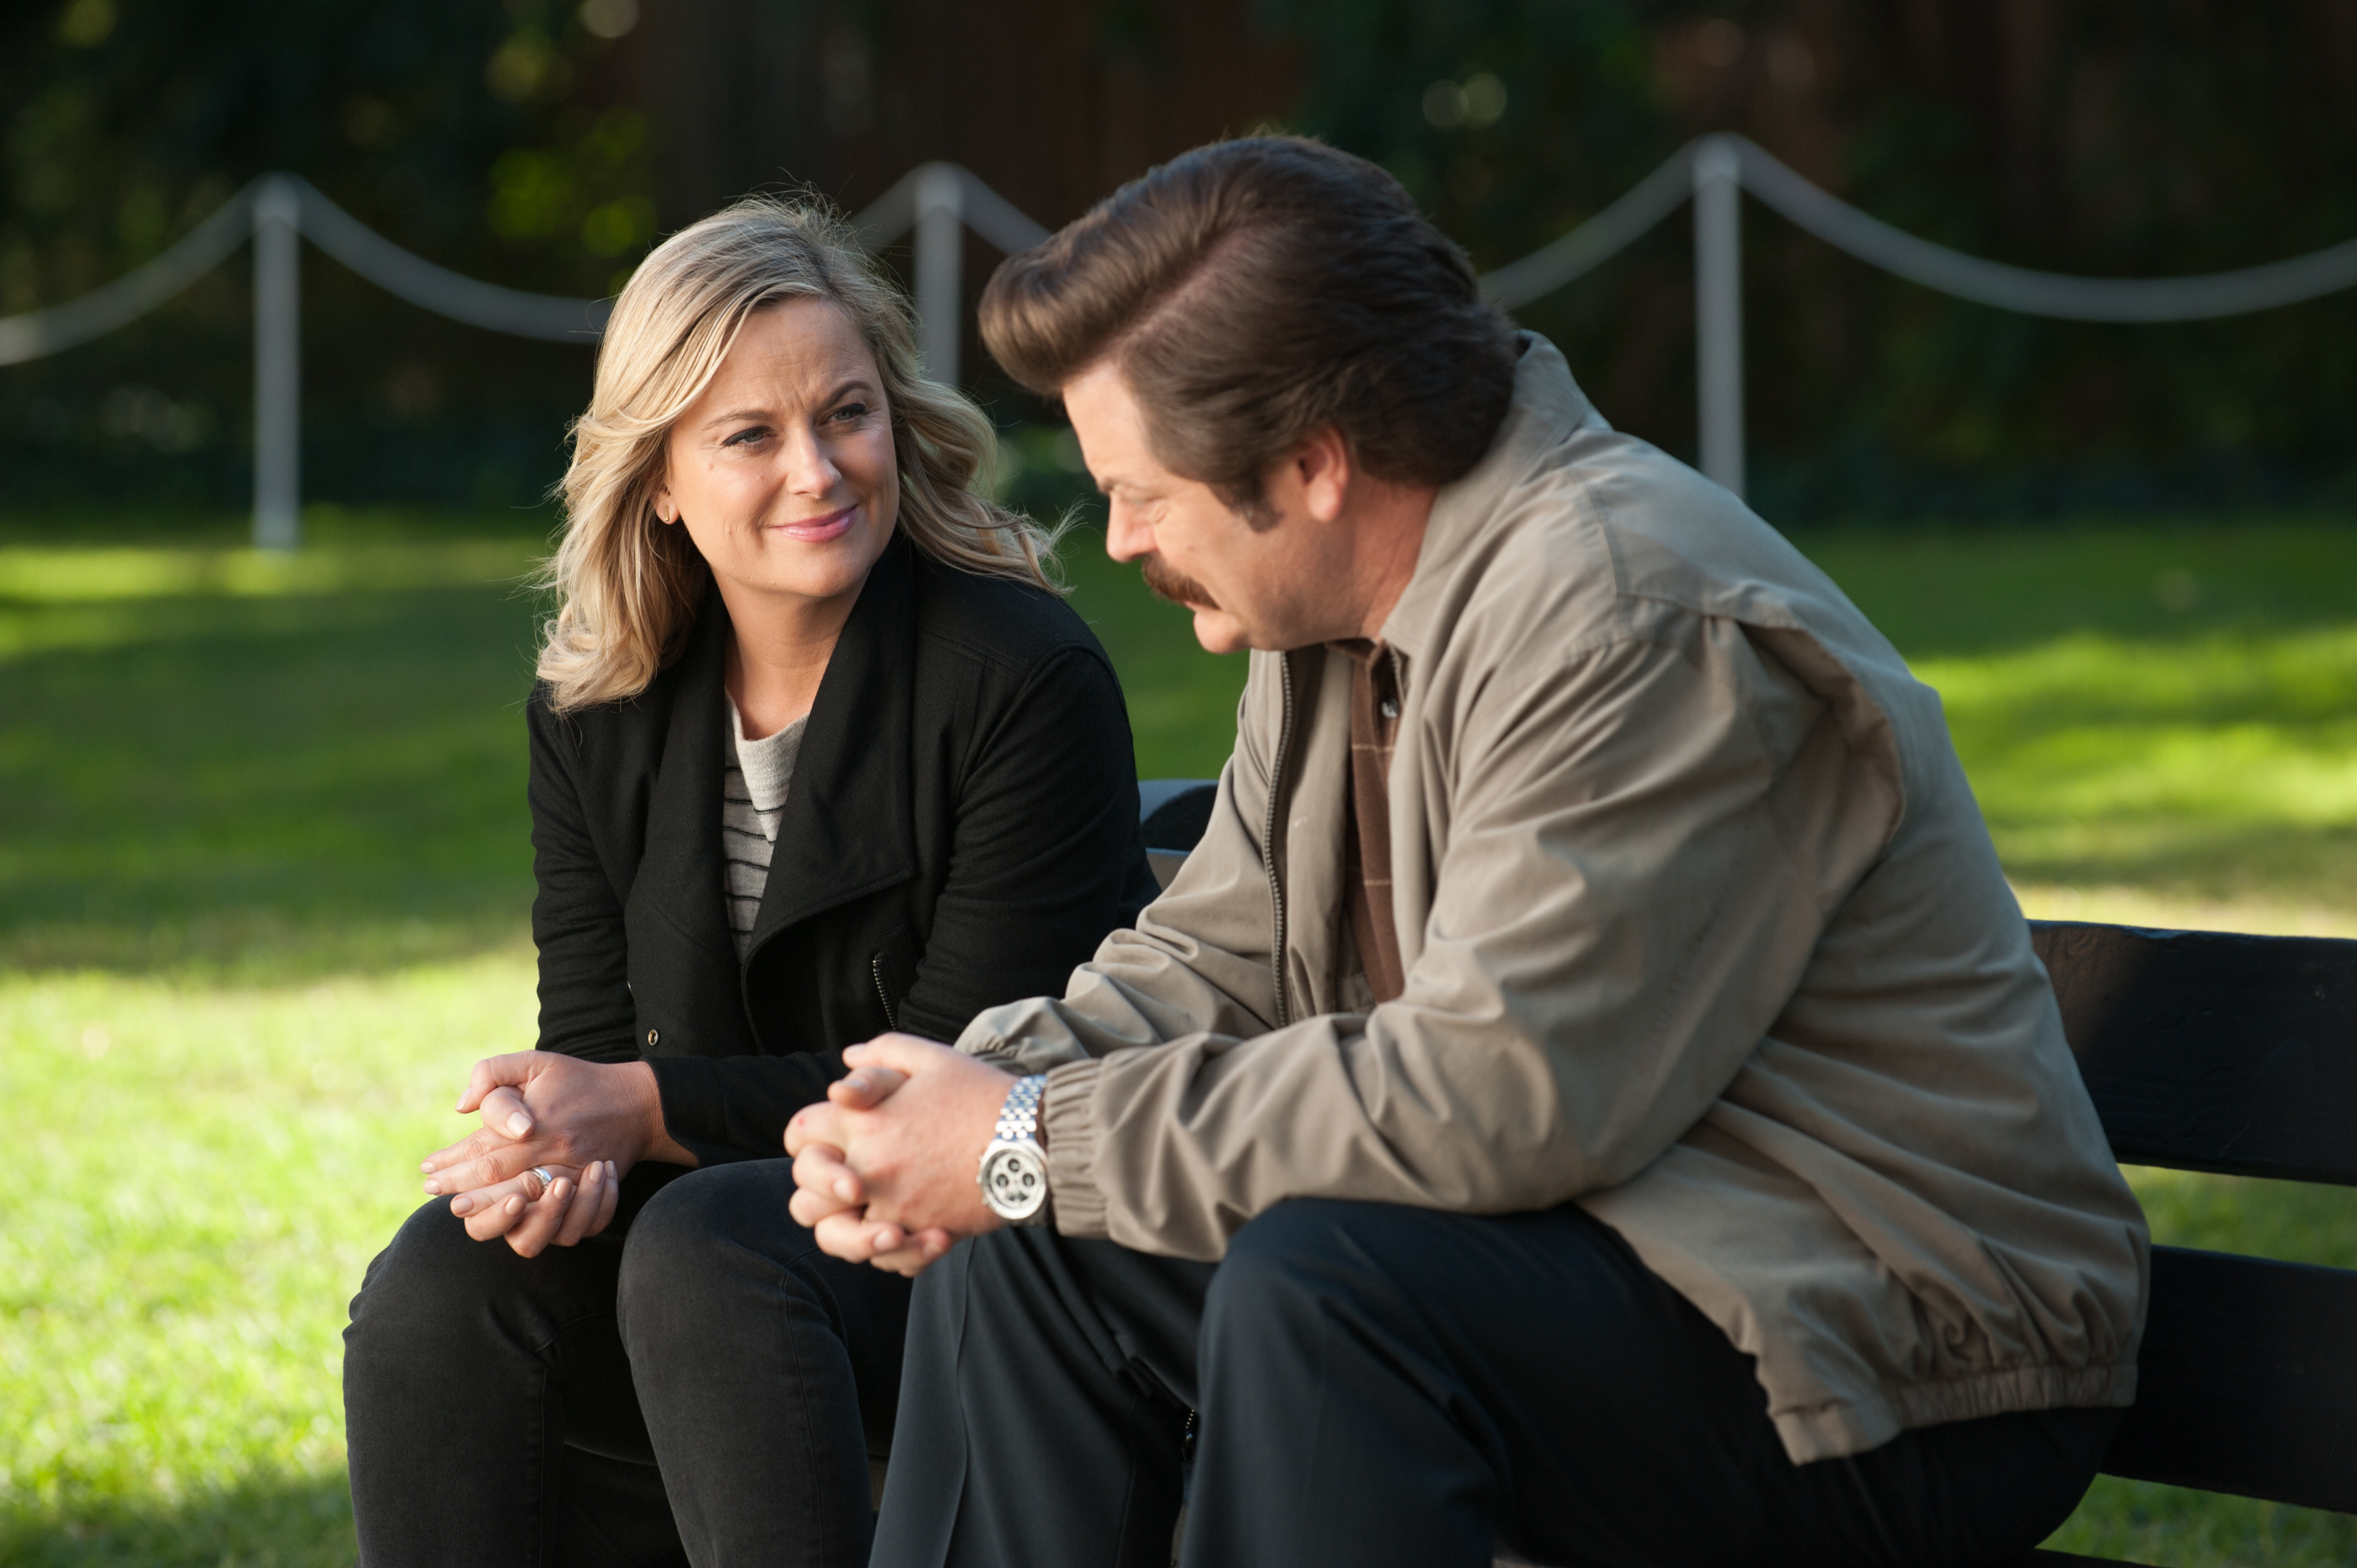 Amy Poehler as Leslie Knope and Nick Offerman as Ron Swanson.